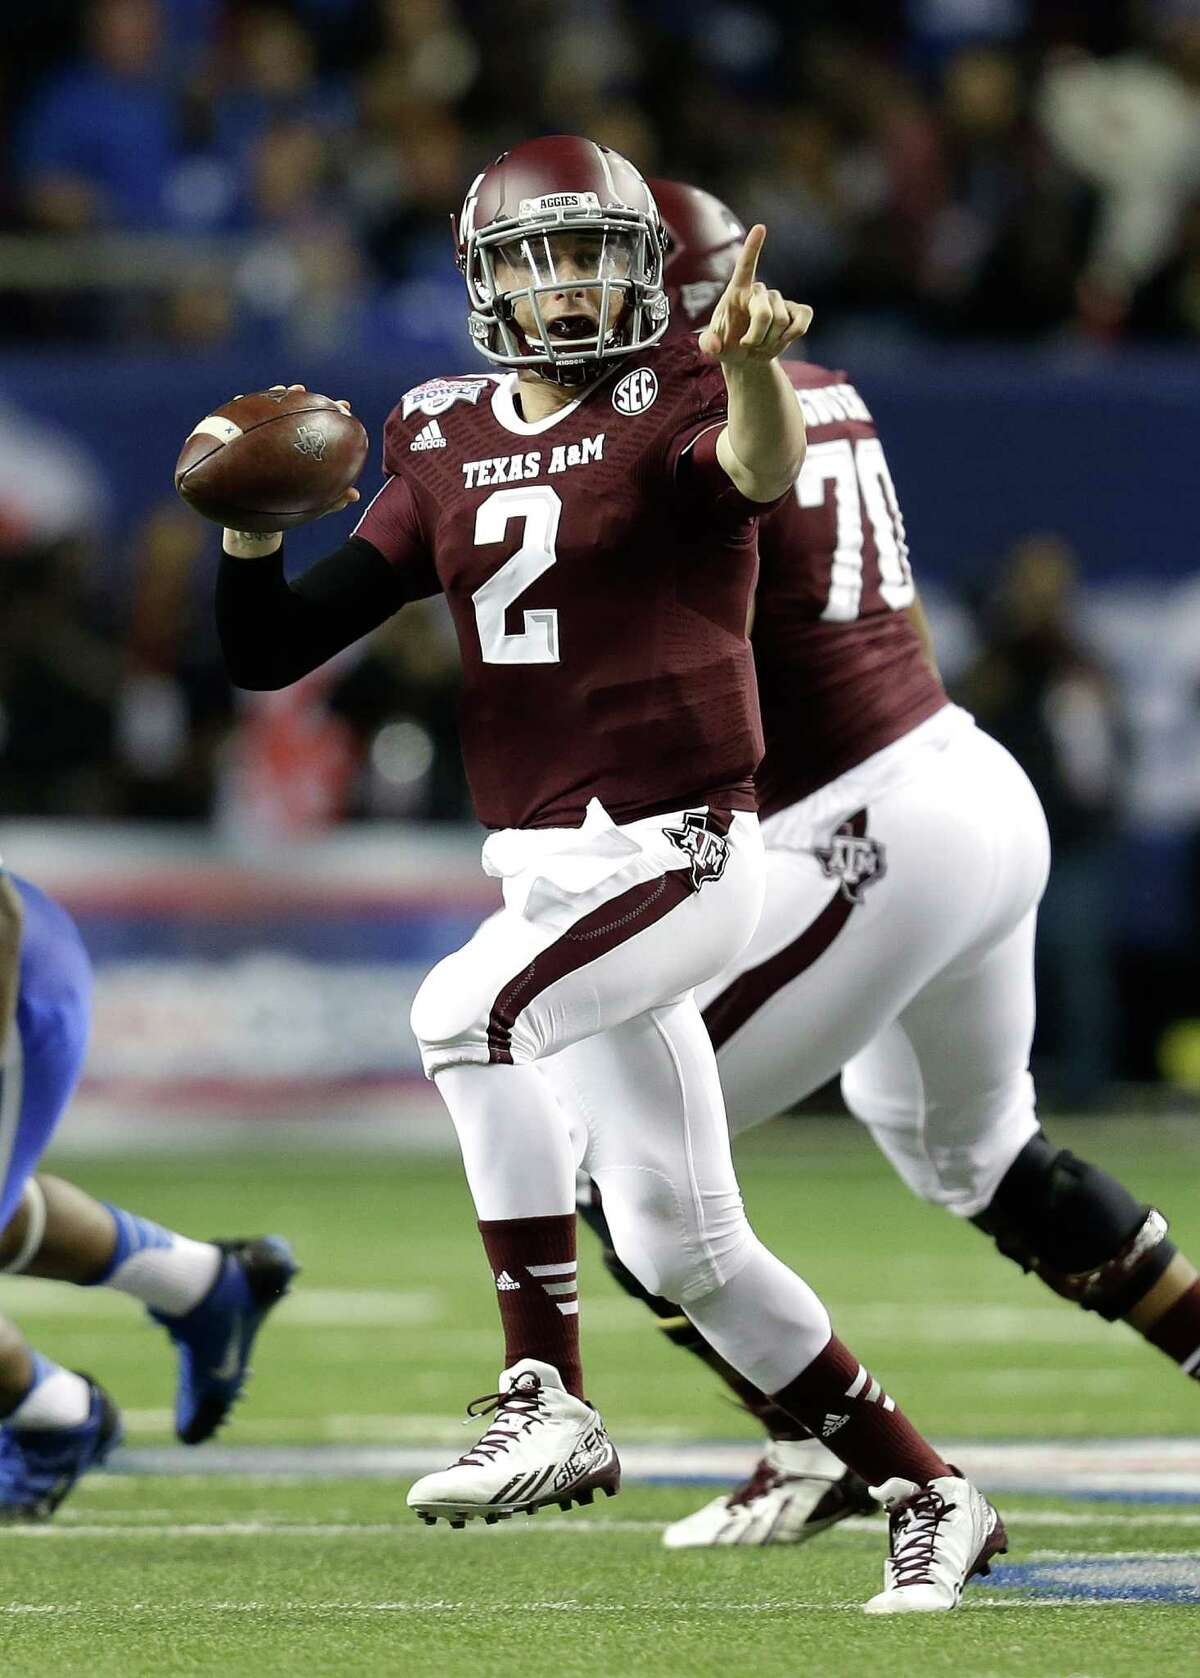 ATLANTA, GA - DECEMBER 31: Quarterback Johnny Manziel #2 of the Texas A&M Aggies points and looks downfield to pass during the the Chick-fil-A Bowl game against the Duke Blue Devils at the Georgia Dome on December 31, 2013 in Atlanta, Georgia.